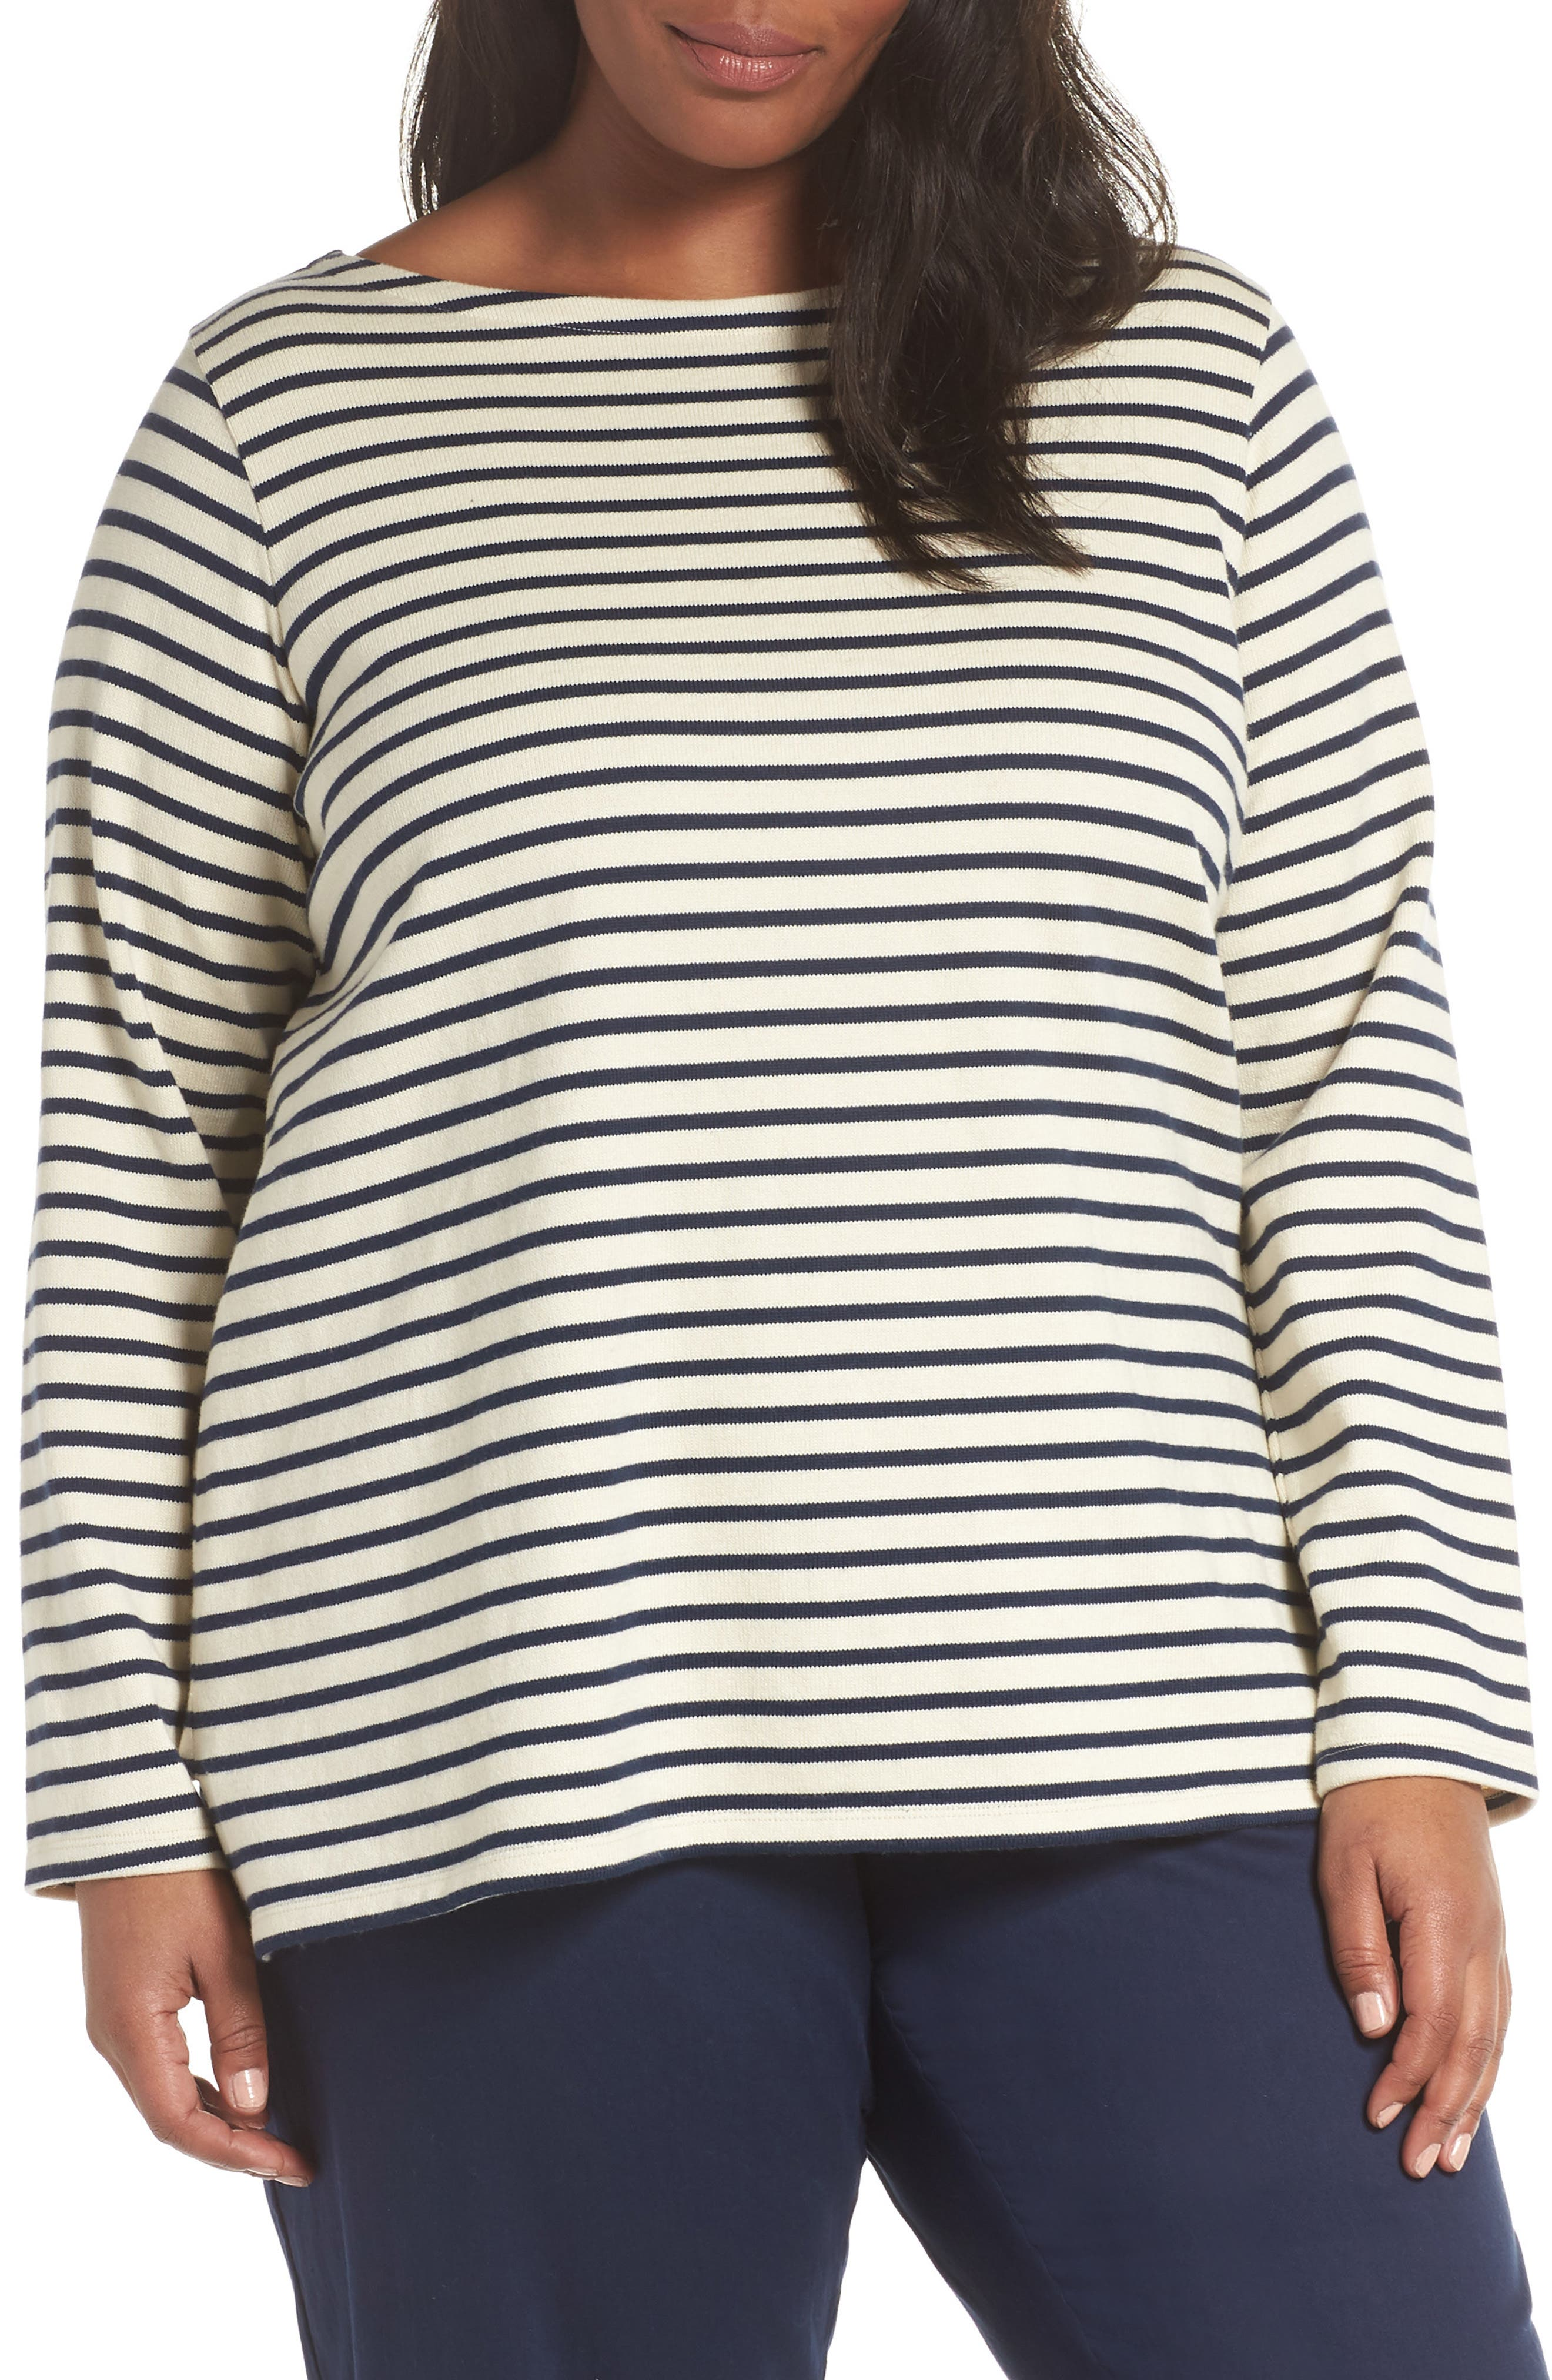 EILEEN FISHER, Seaside Stripe Bateau Neck Tunic, Main thumbnail 1, color, 103